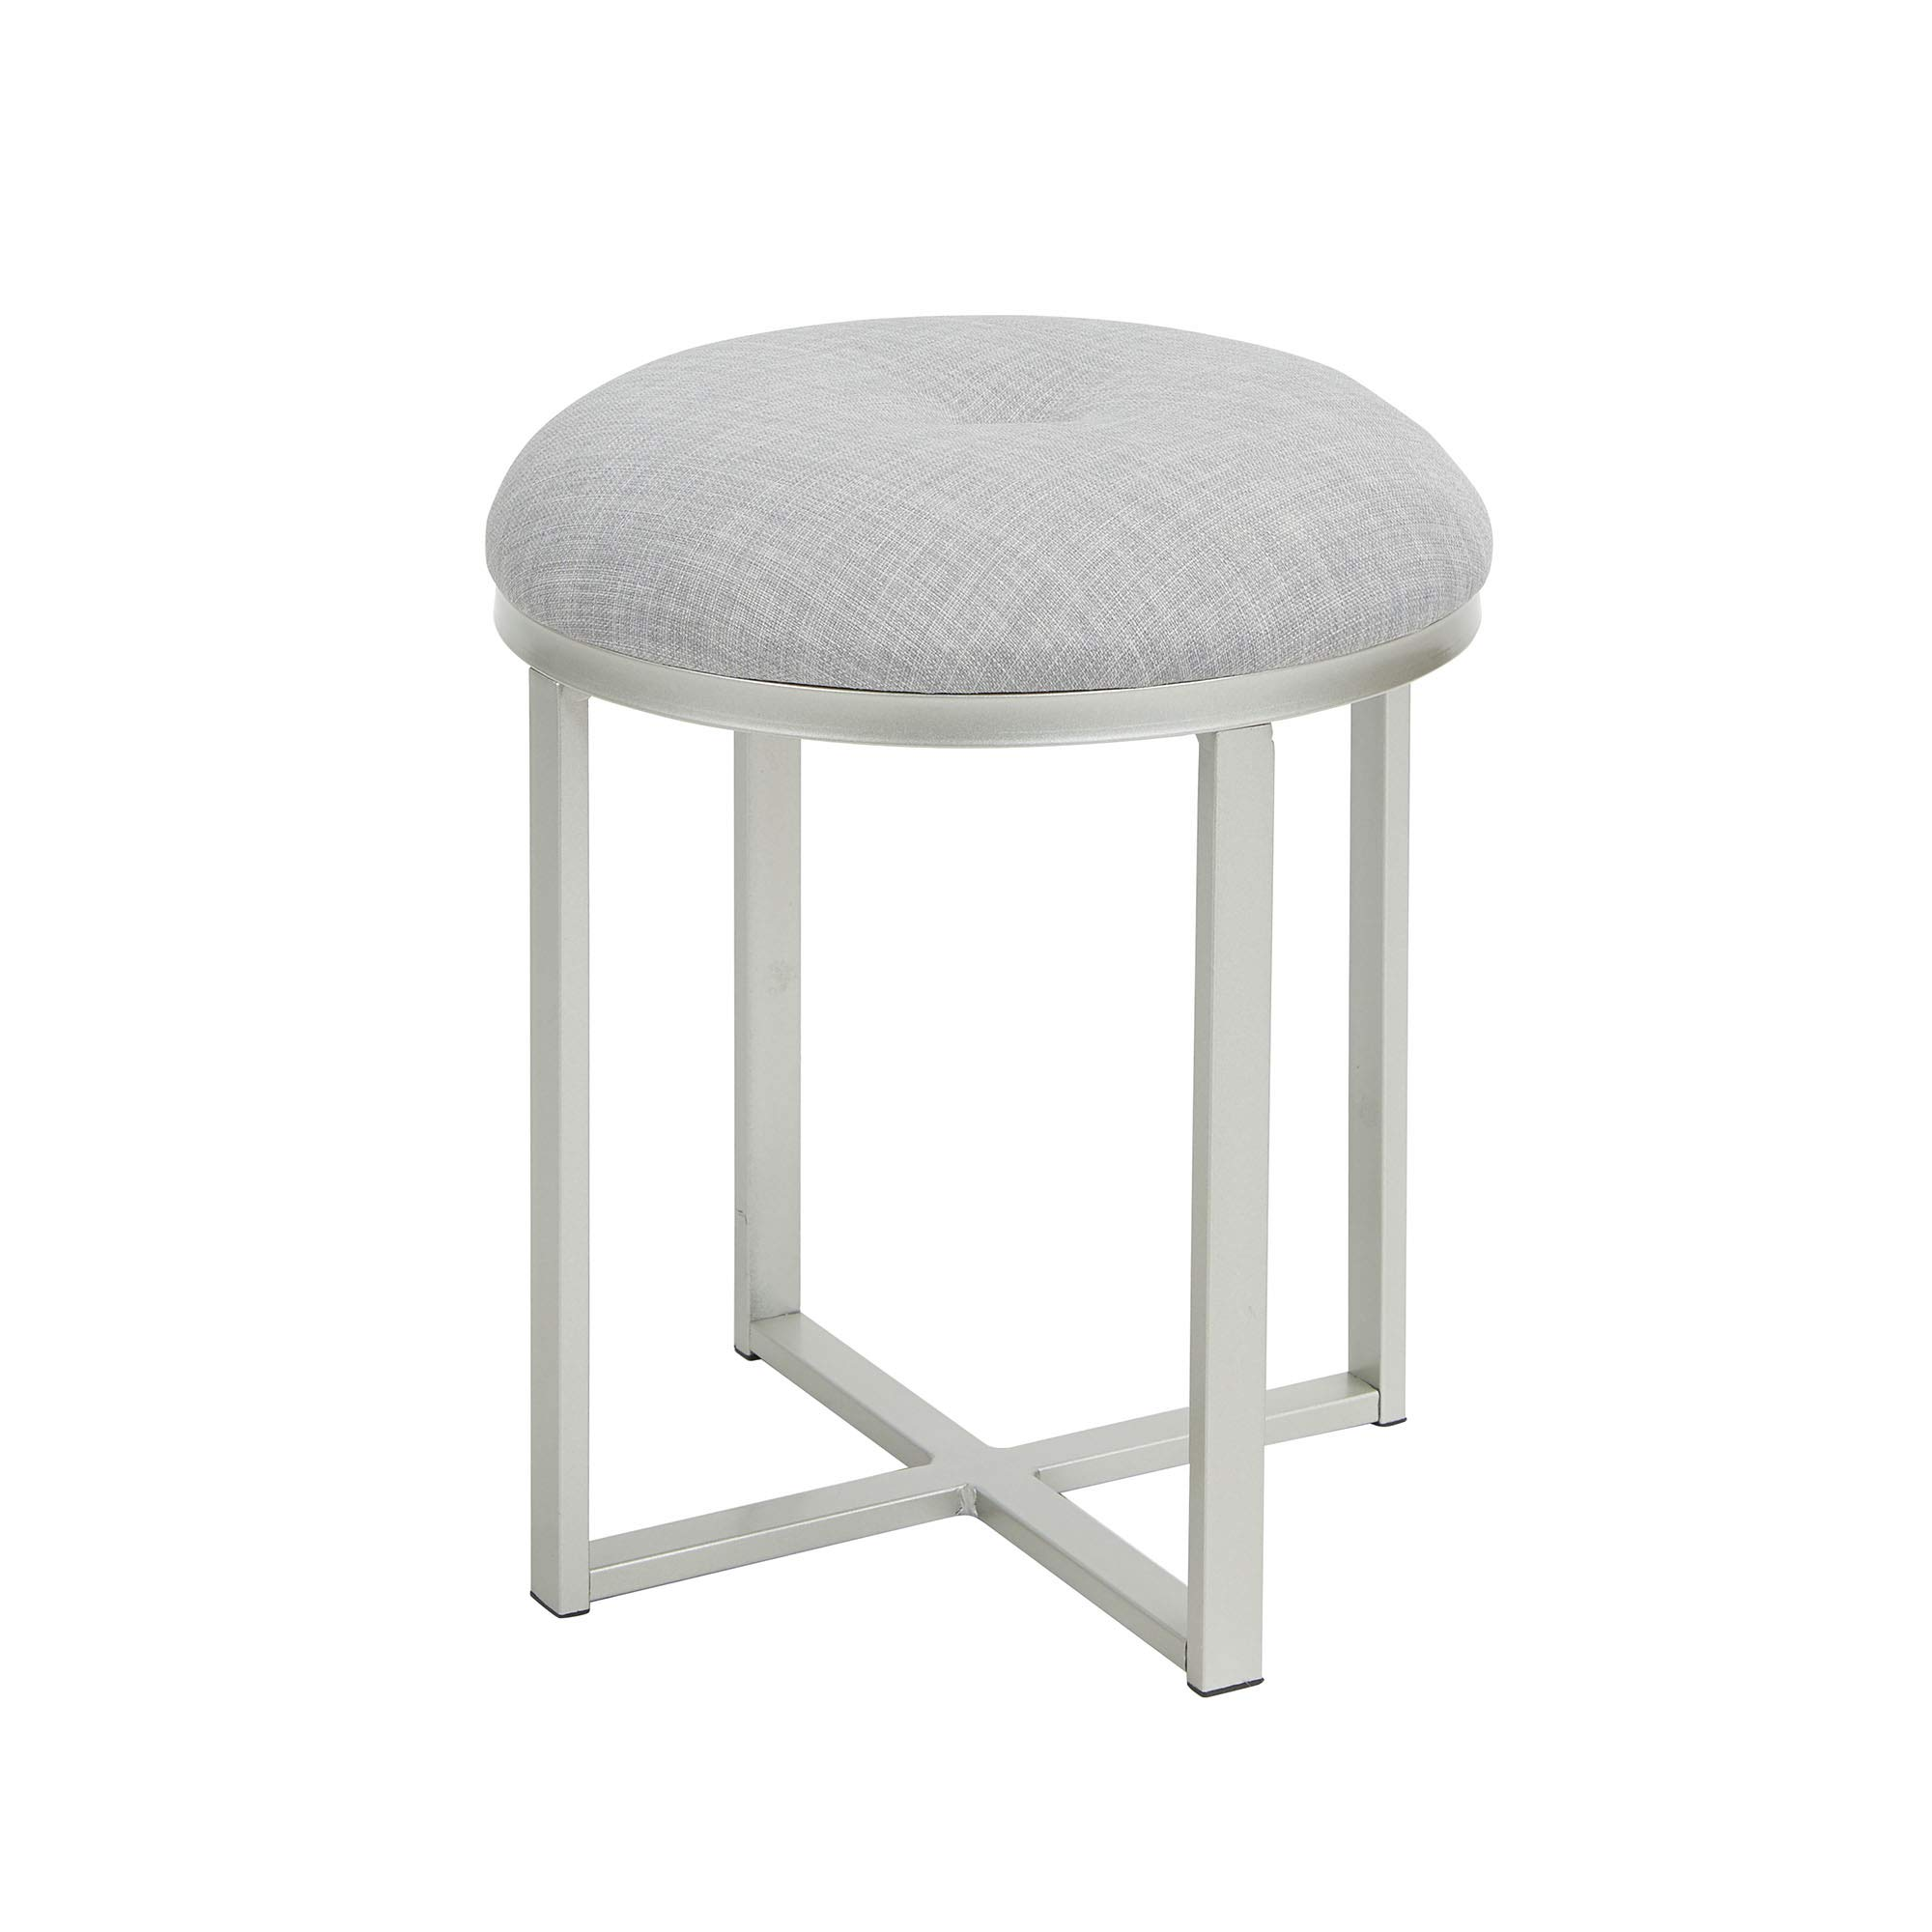 Silverwood Vanity Bench, Gray Linen and Silver Metal by Silverwood